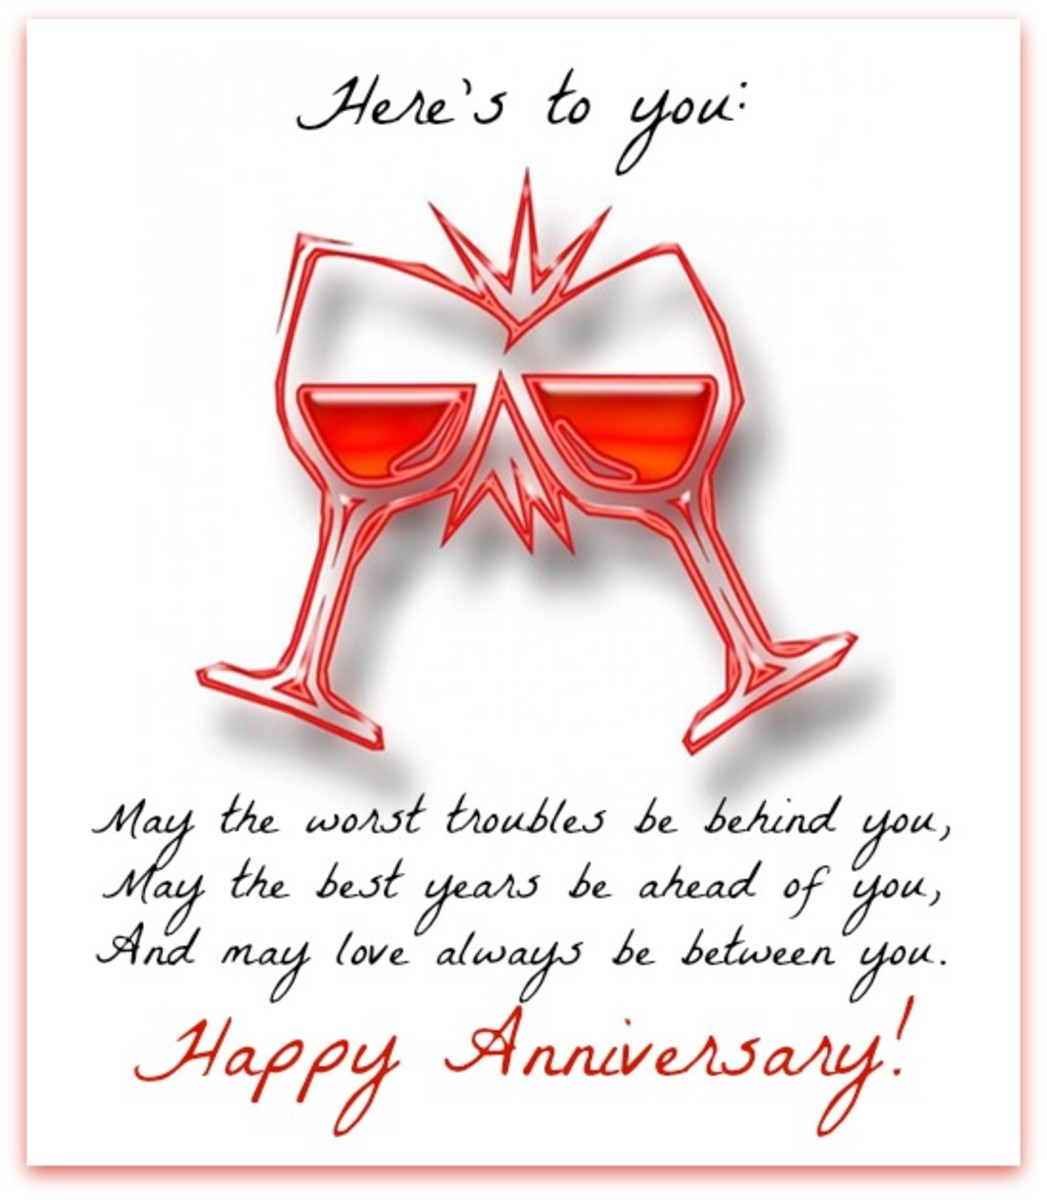 Happy anniversary messages and wishes holidappy celebrations are the order of the day when a couple has an anniversary you cant go wrong with a champagne toast and accompanying best wishes m4hsunfo